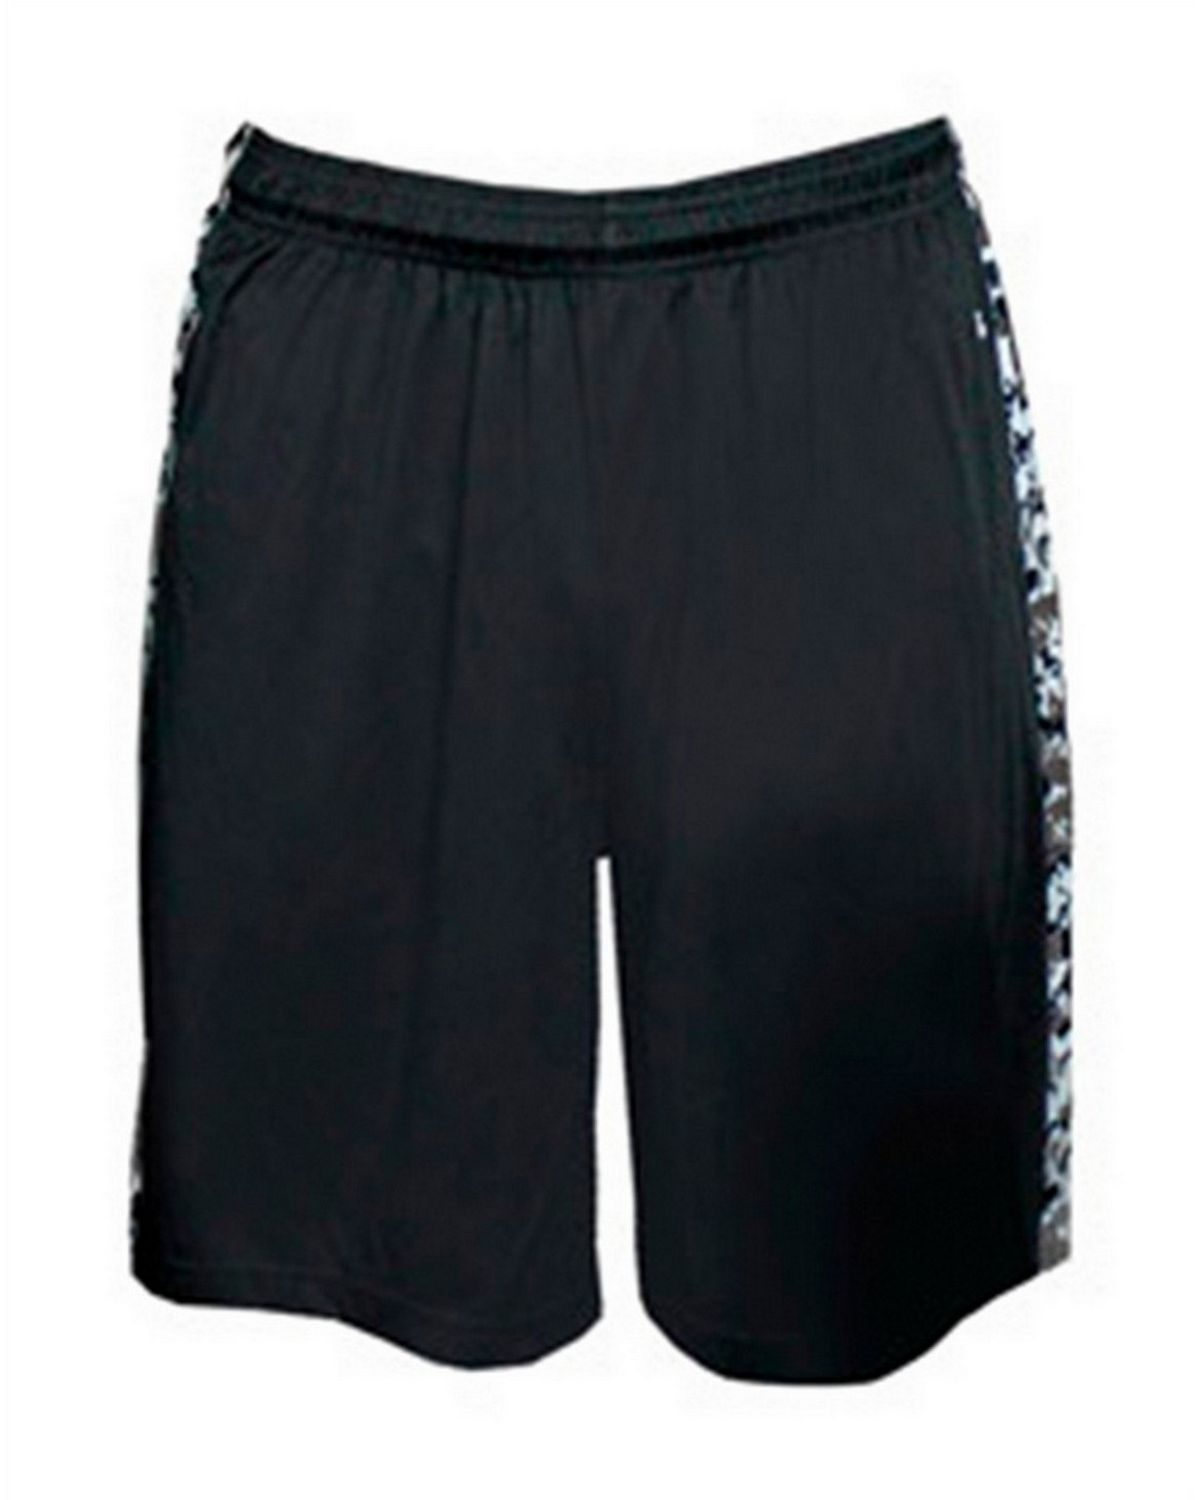 Badger 2249 Youth B-Attack Shorts - Black/White Digital - L 2249